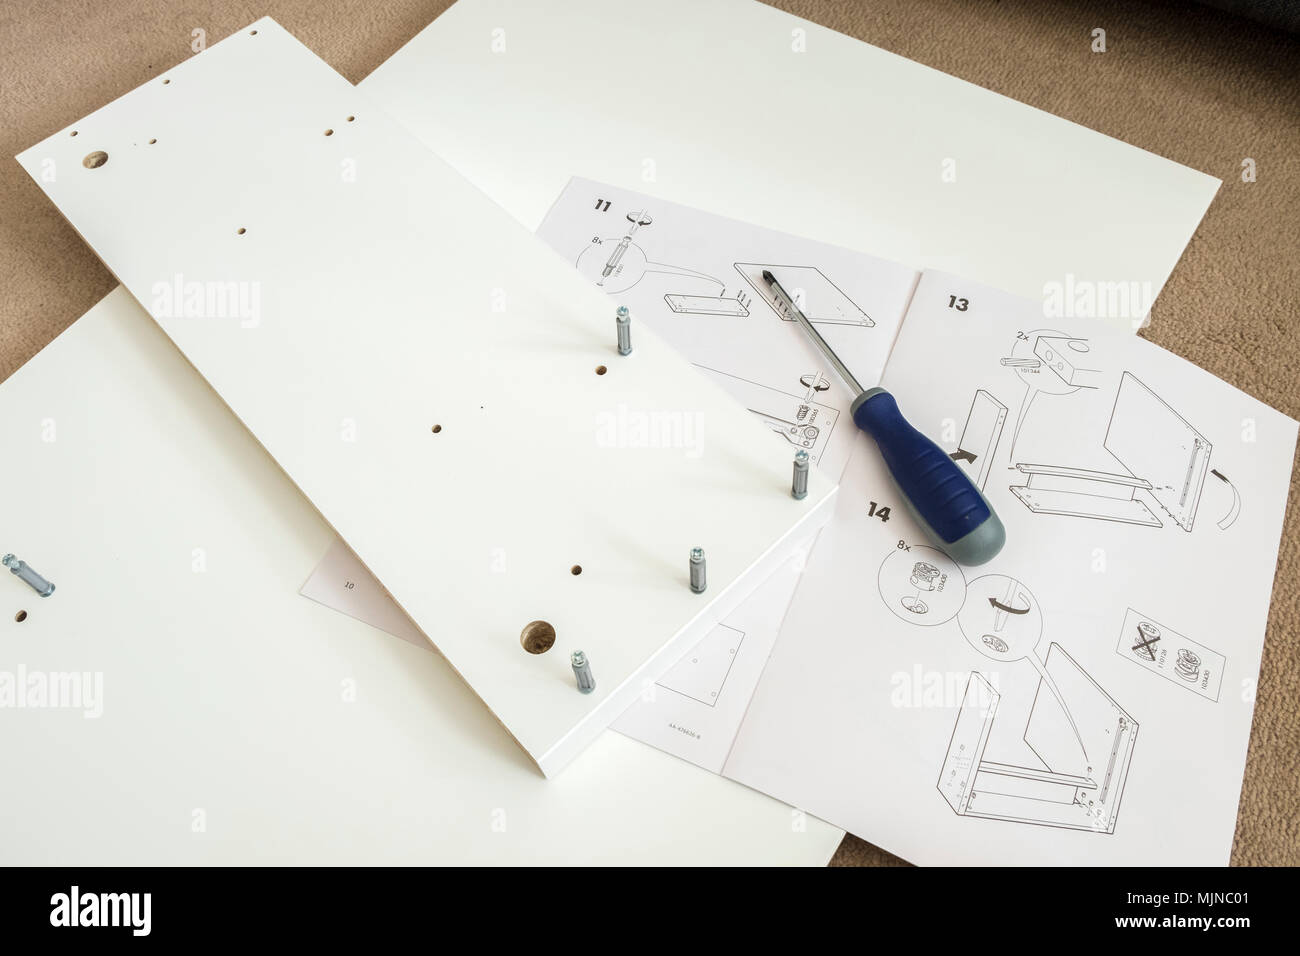 Ikea self assembly furniture instructions and tools - Stock Image